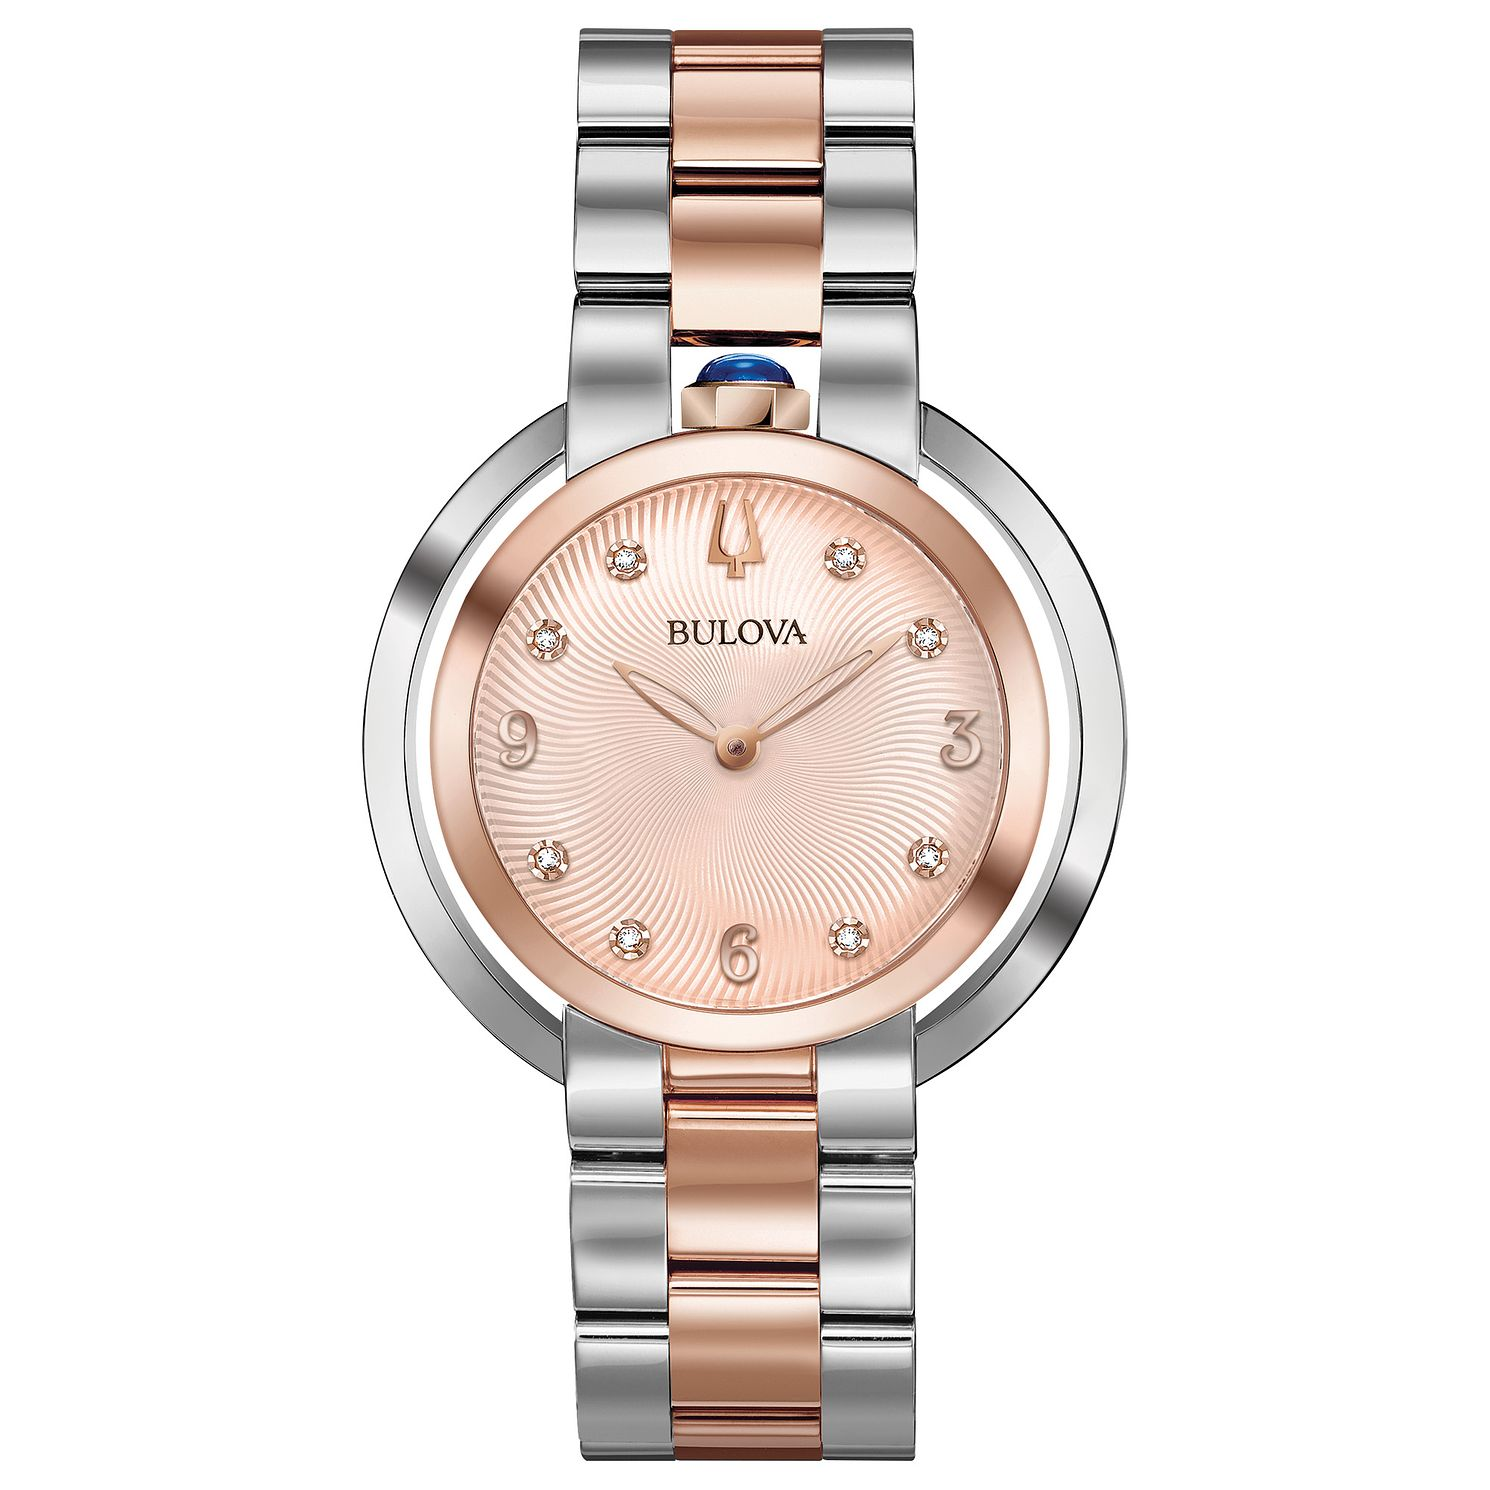 Bulova Ladies' Rubaiyat Rose Gold Tone Bracelet Watch - Product number 8087784